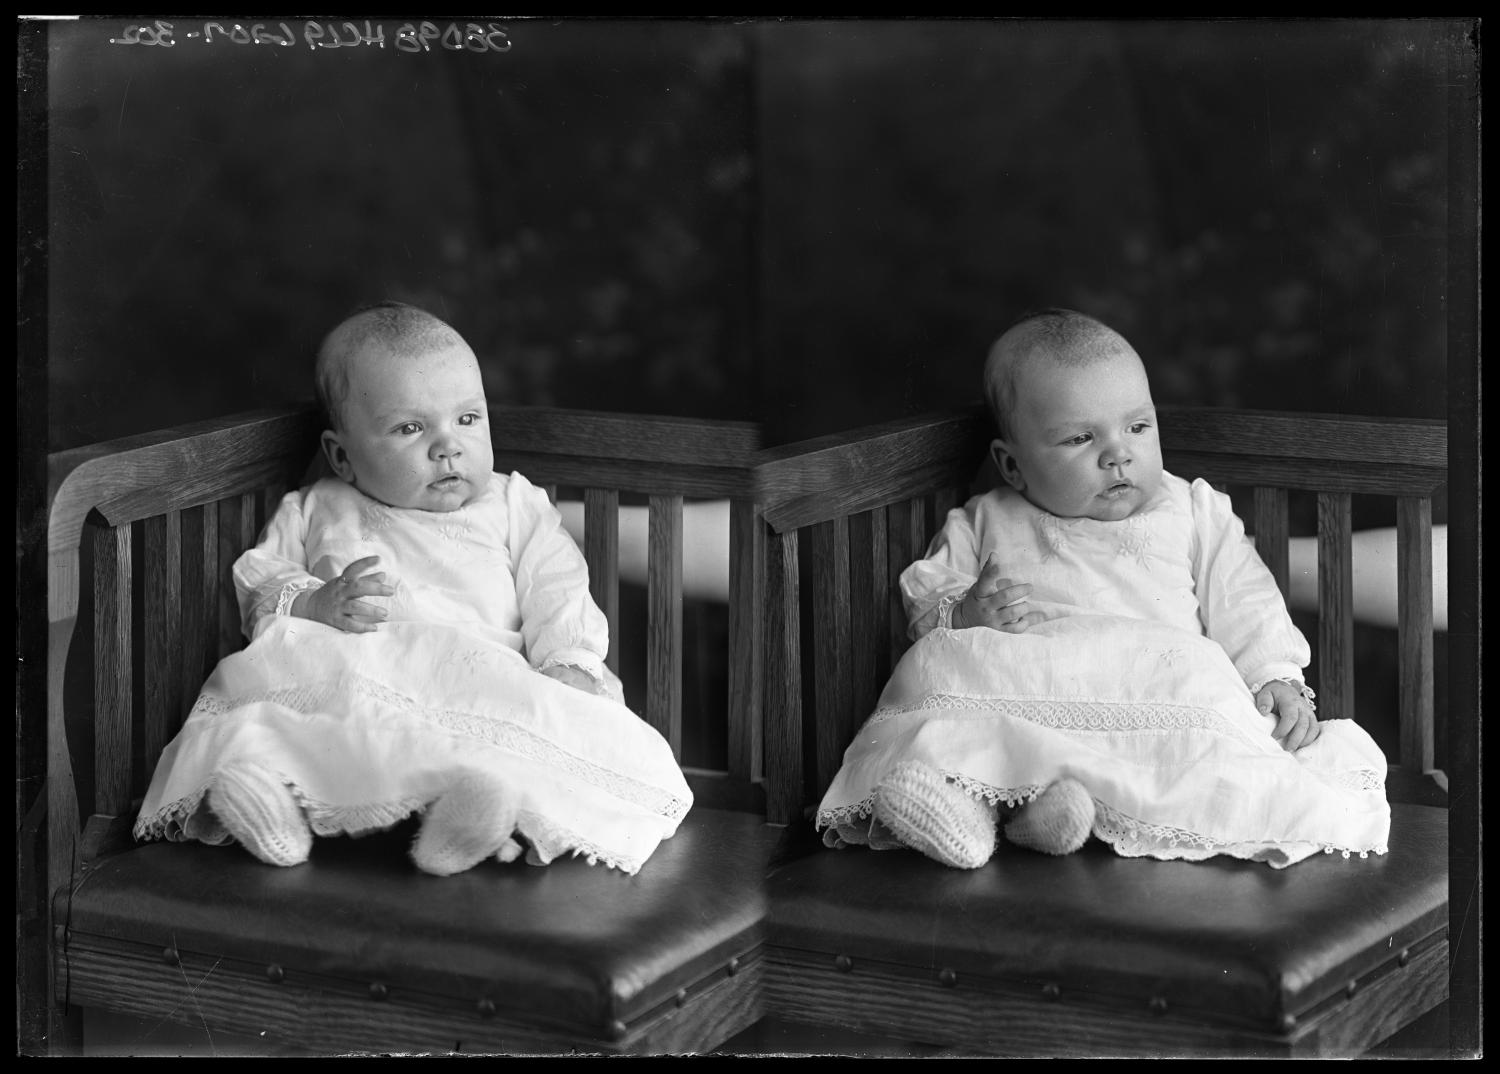 [Portraits of Baby]                                                                                                      [Sequence #]: 1 of 1